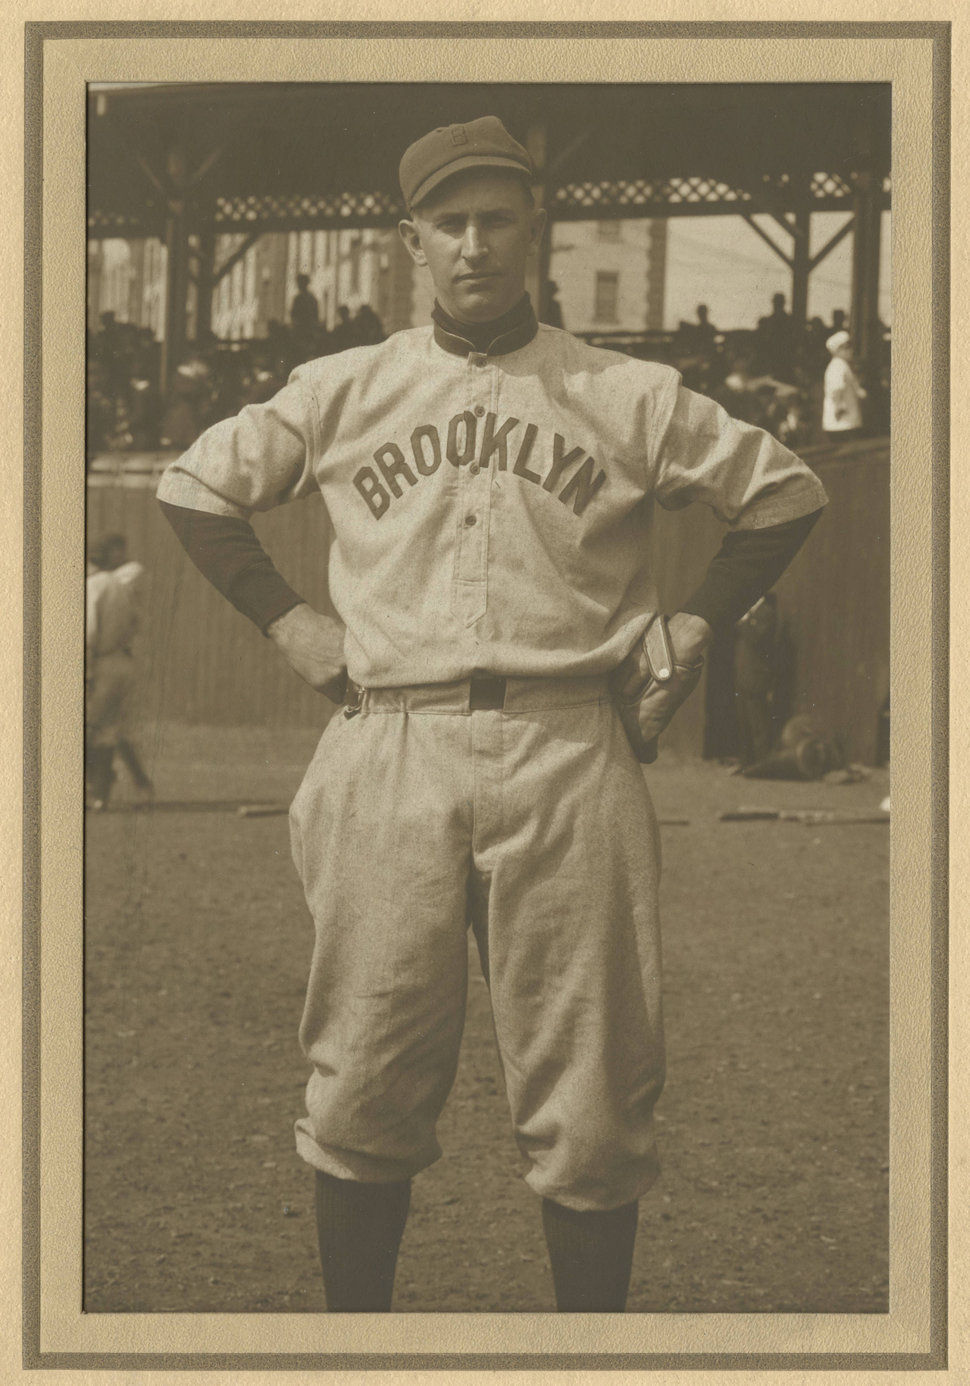 WJ Bradley in Brooklyn uniform Clev Pub Library